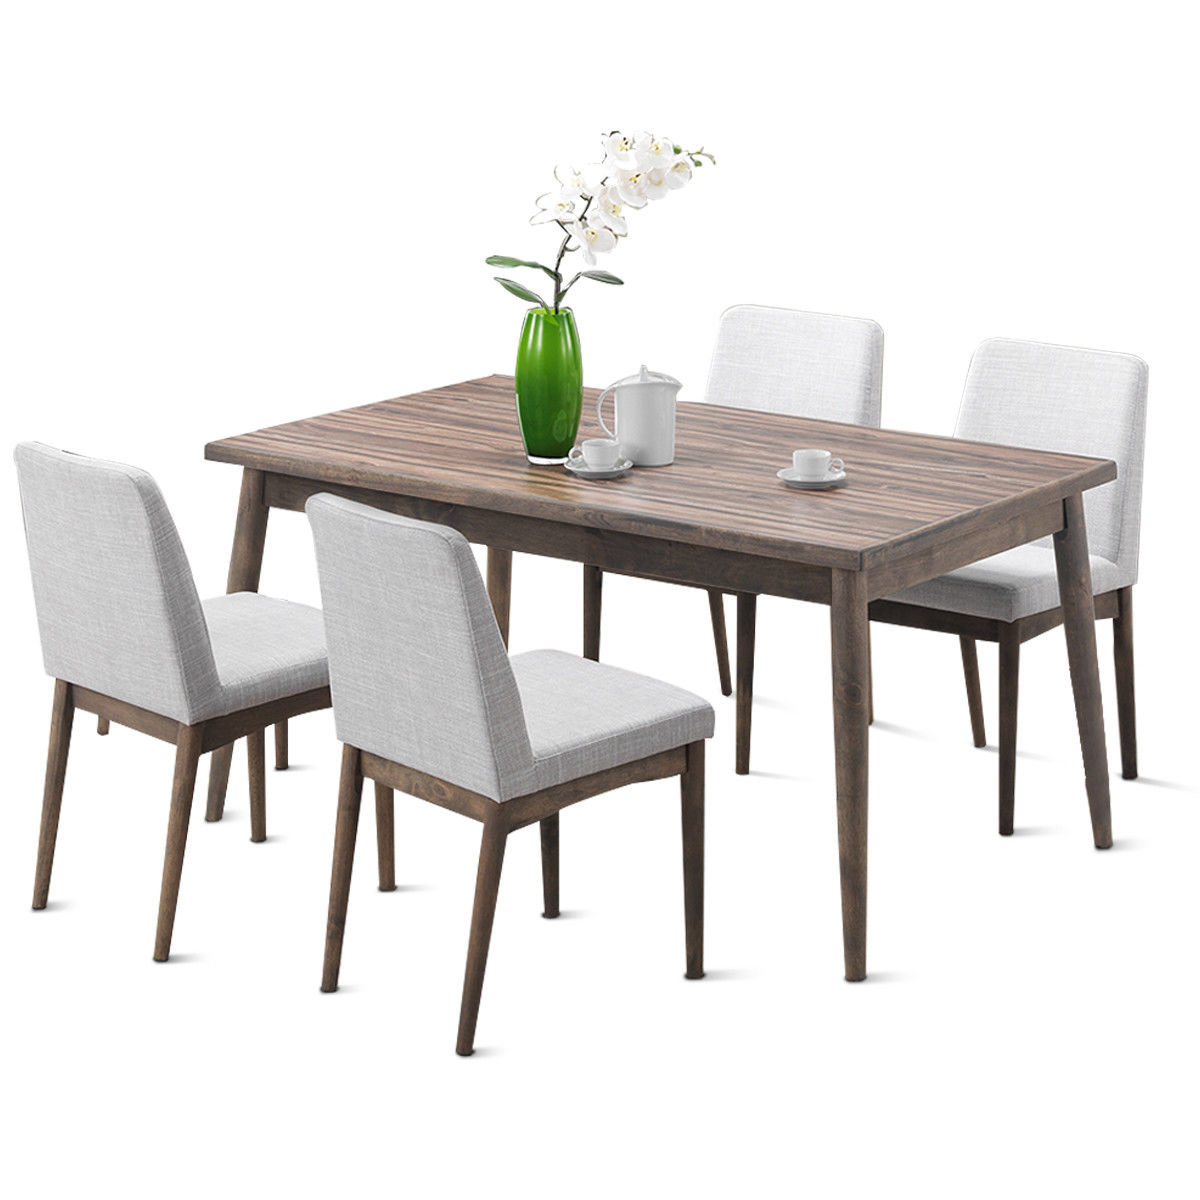 Most Recent Liles 5 Piece Breakfast Nook Dining Sets Intended For Easterling 5 Piece Dining Set (View 21 of 25)